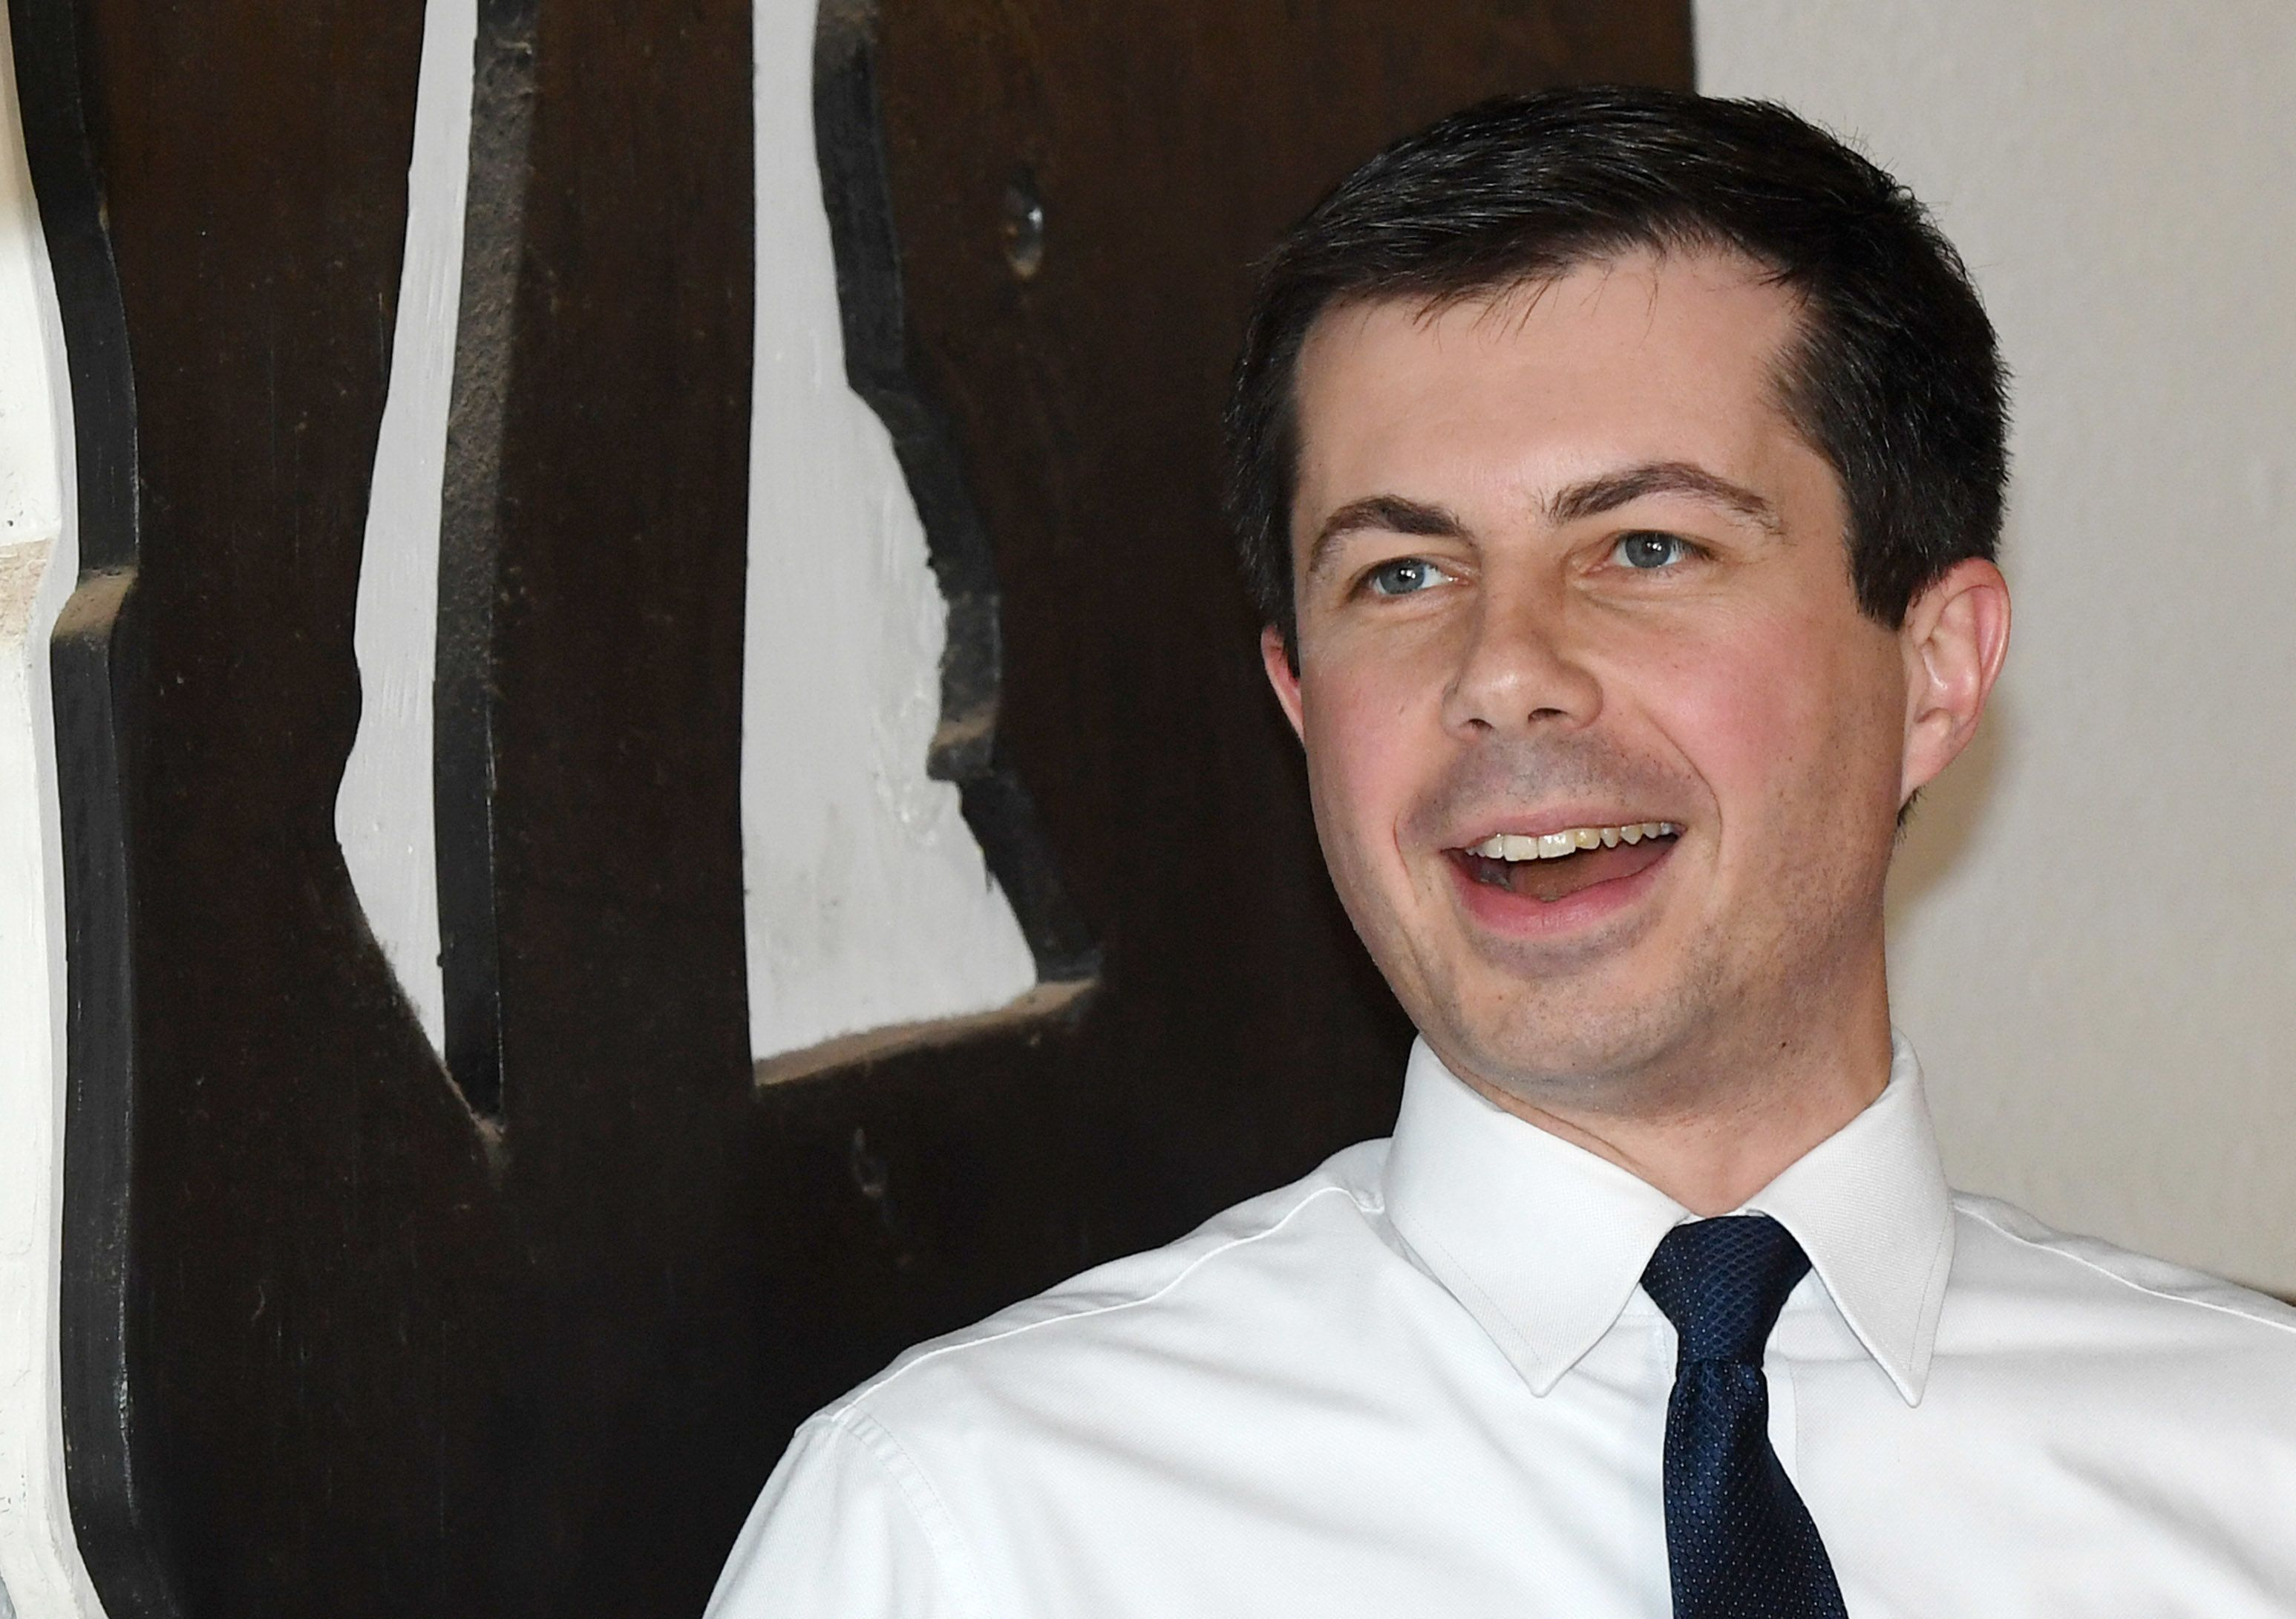 LAS VEGAS, NEVADA - APRIL 08:  South Bend, Indiana Mayor Pete Buttigieg speaks during a meet-and-greet at Madhouse Coffee on April 8, 2019 in Las Vegas, Nevada. Buttigieg recently launched an exploratory committee to run for the 2020 Democratic presidential nomination and has seen a surge in the polls amid a crowded field of Democratic candidates.  (Photo by Ethan Miller/Getty Images)